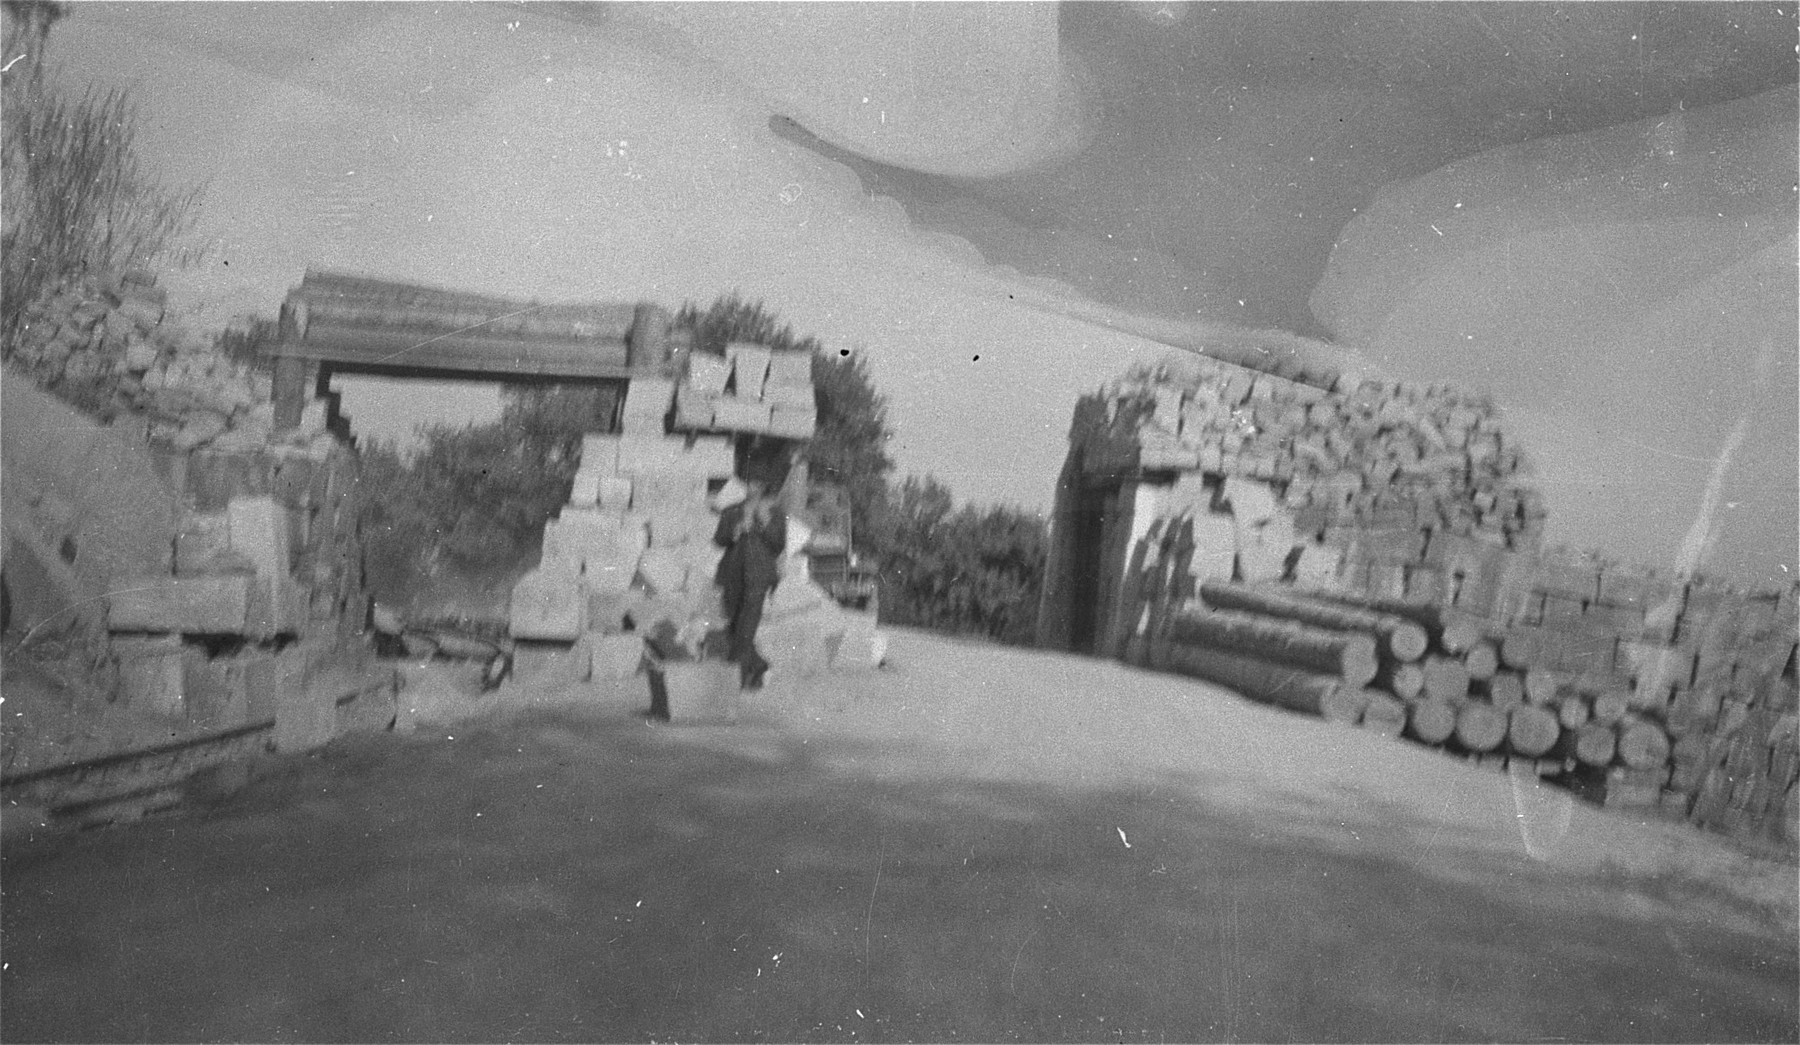 Storage area for quarried stones above the Wiener Graben quarry in the Mauthausen concentration camp.